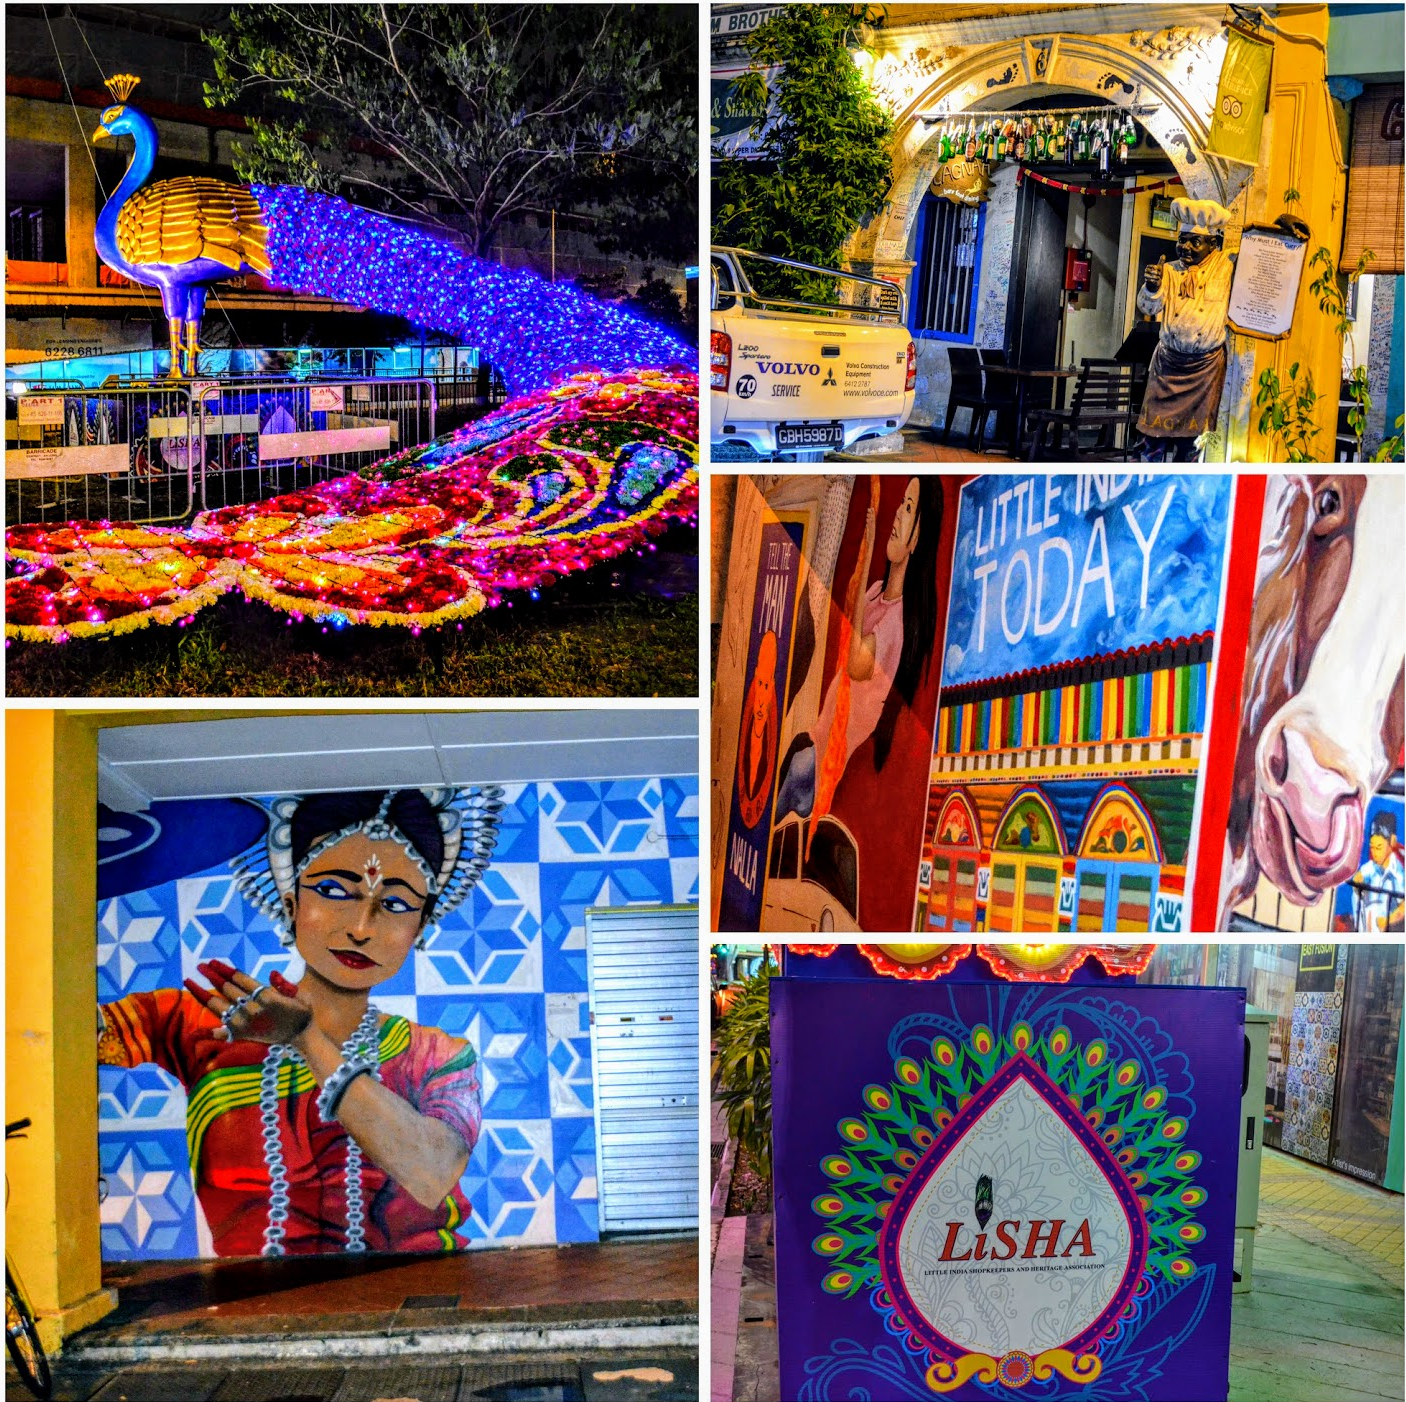 Today, Little India's Art Walk is a colourful amalgmation of all that the precinct represents and is a much photographed tourist attraction. Photo: Connected to India